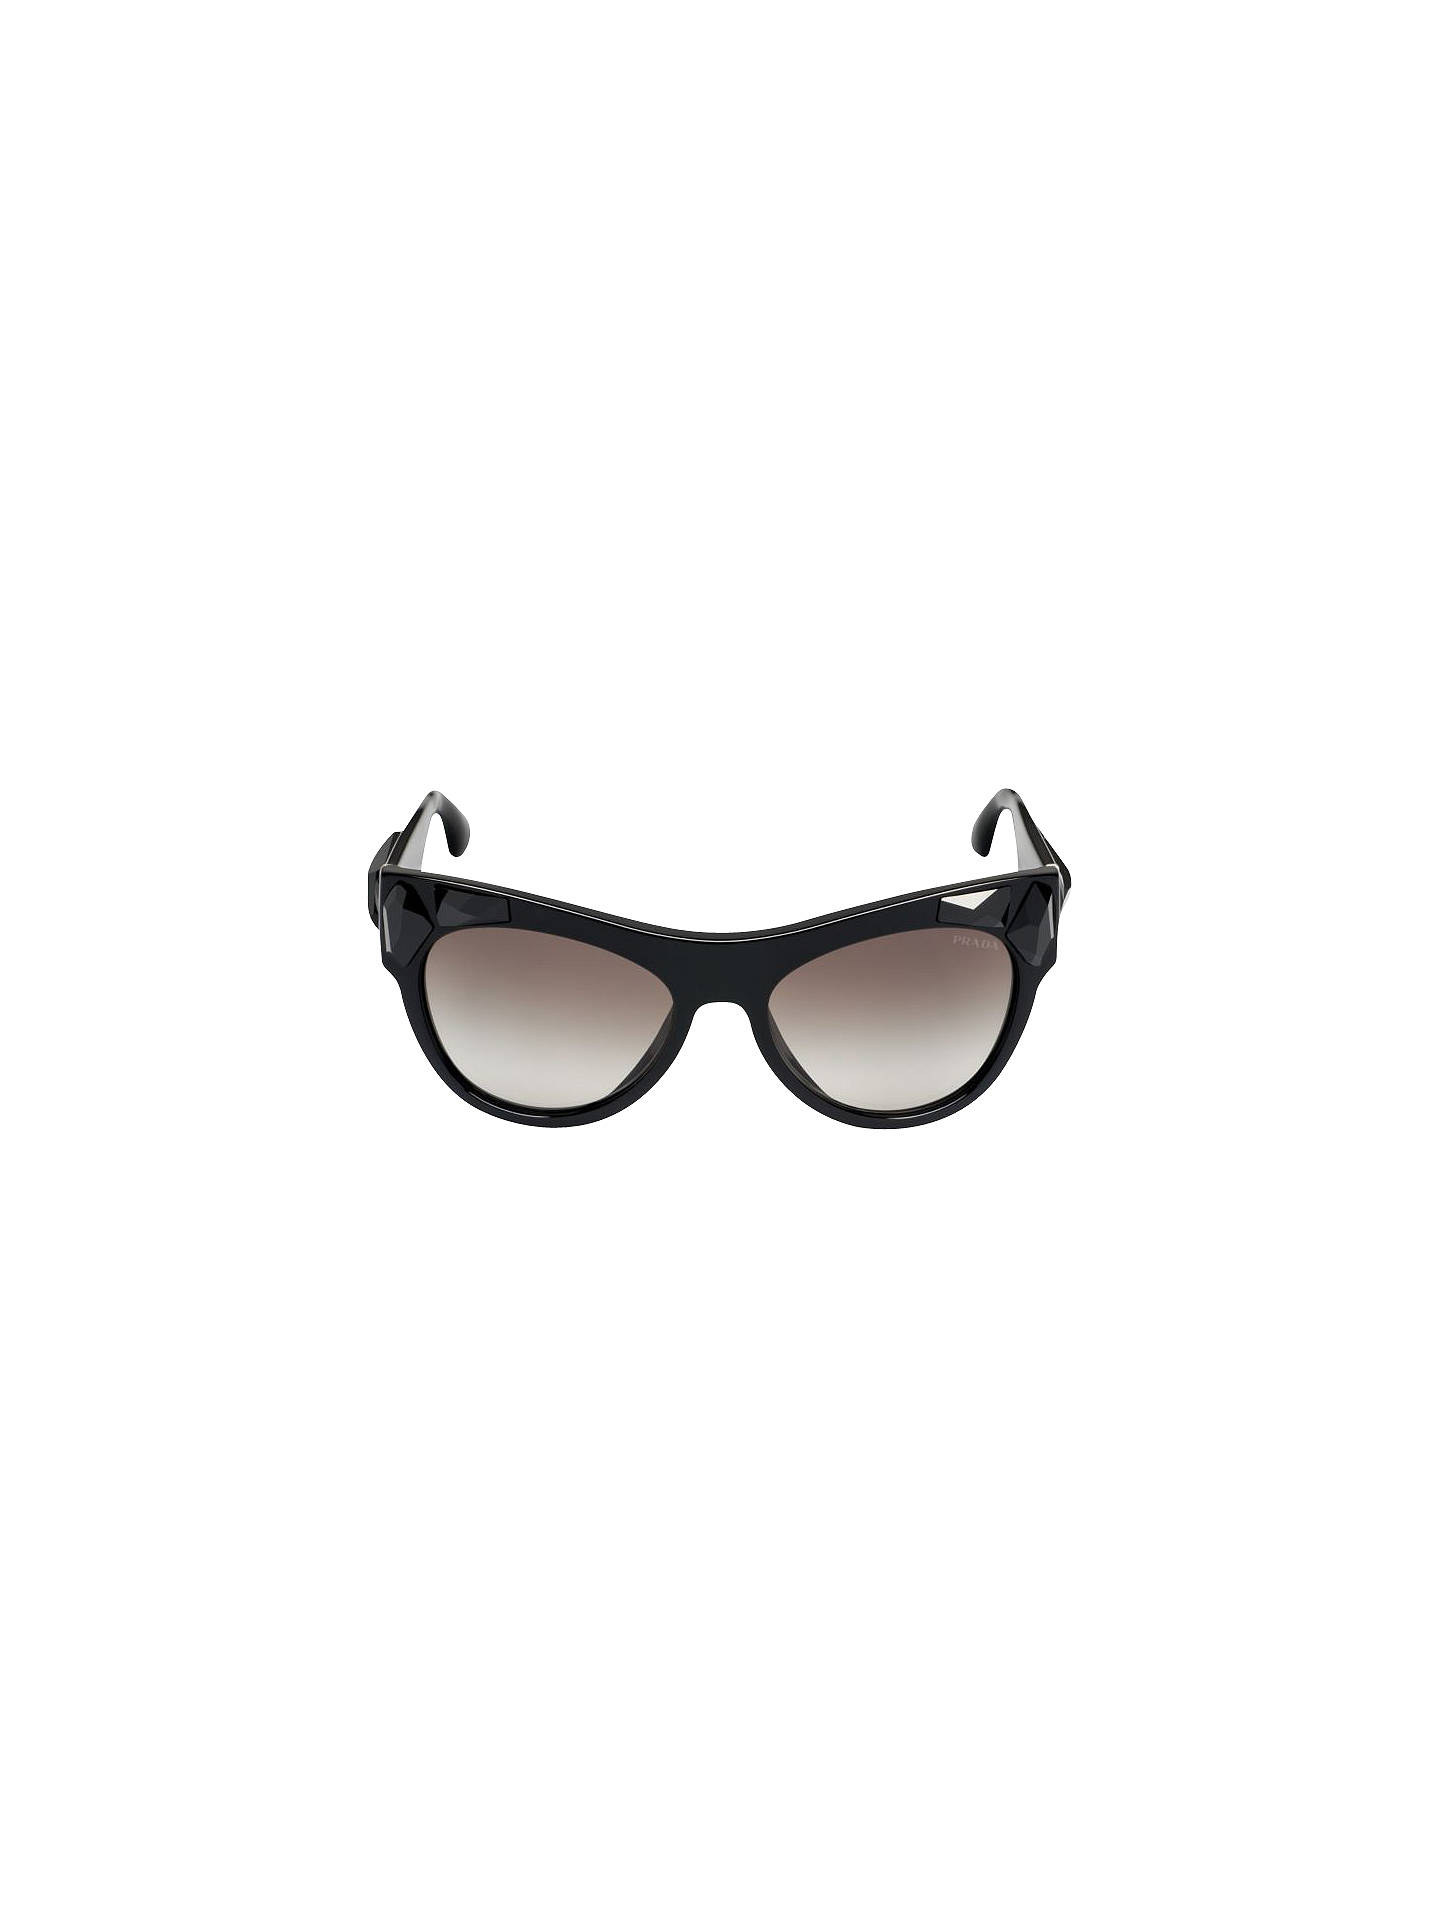 3676772be1f0 ... BuyPrada PR22QS Limited Edition Voice Sunglasses